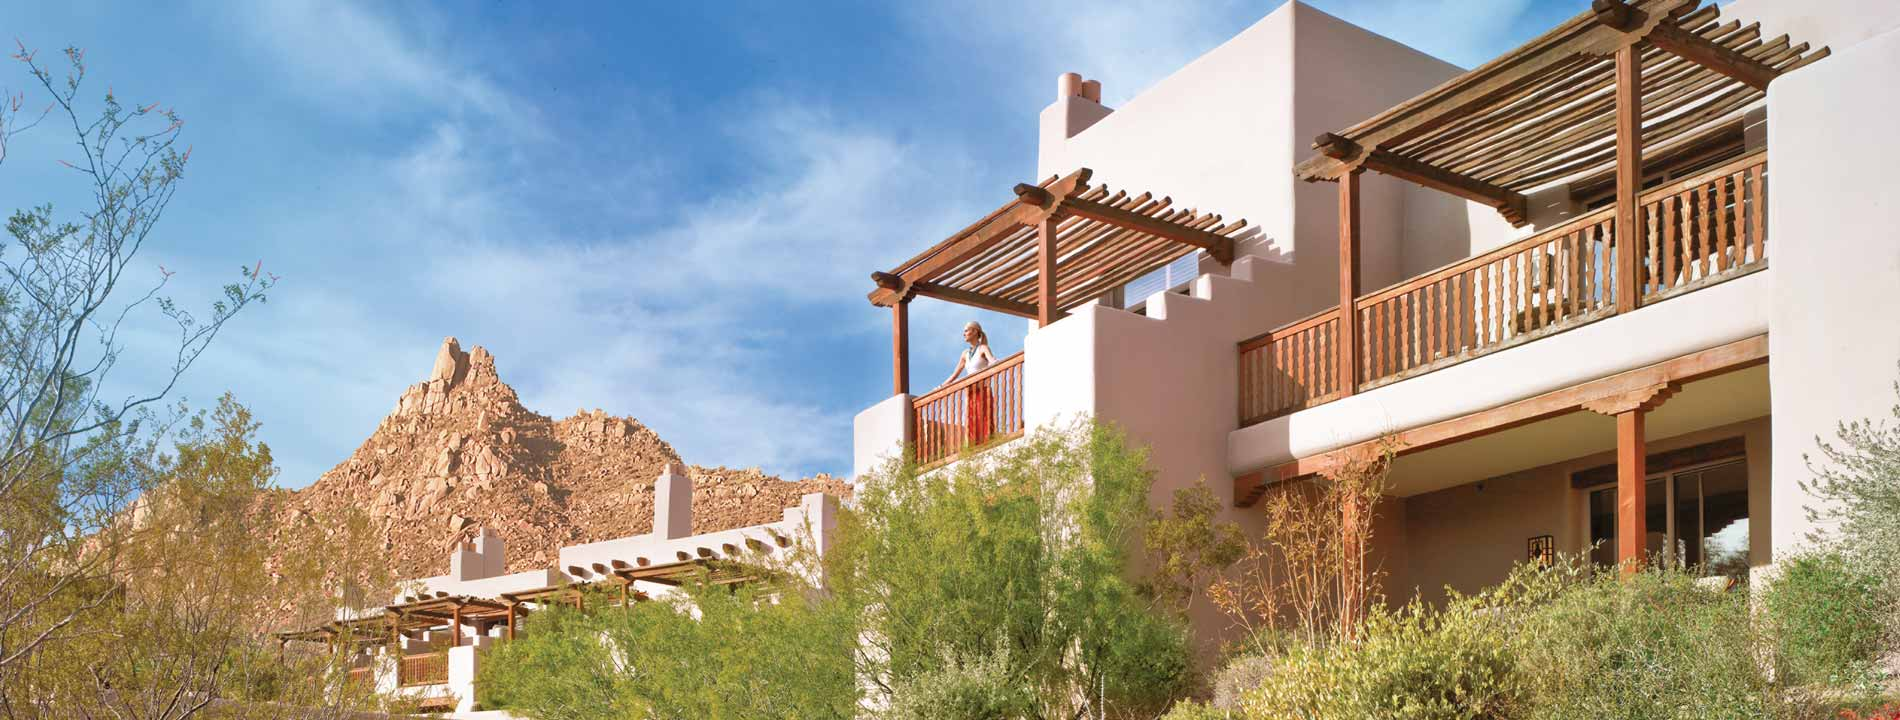 Four Seasons Resort Scottsdale at Troon North features over 200 rooms.